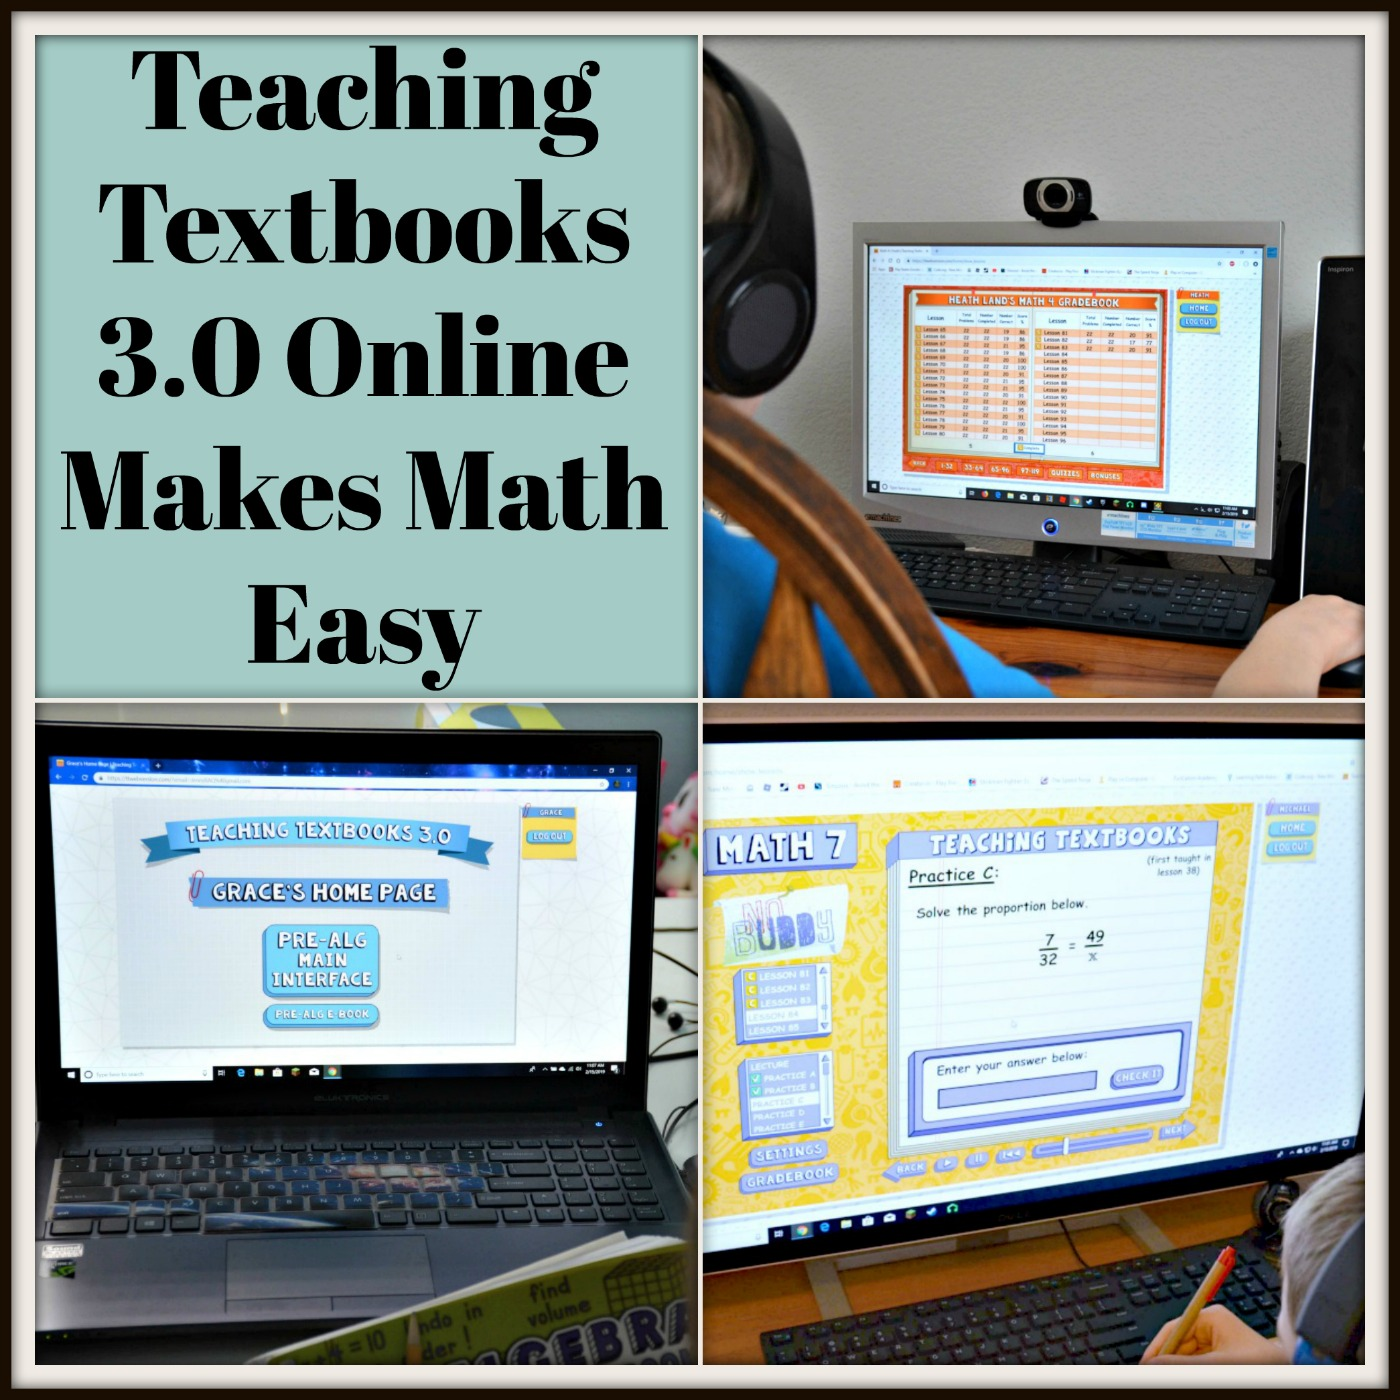 Teaching Textbooks 3 0 Online Makes Math Easy - Real And Quirky